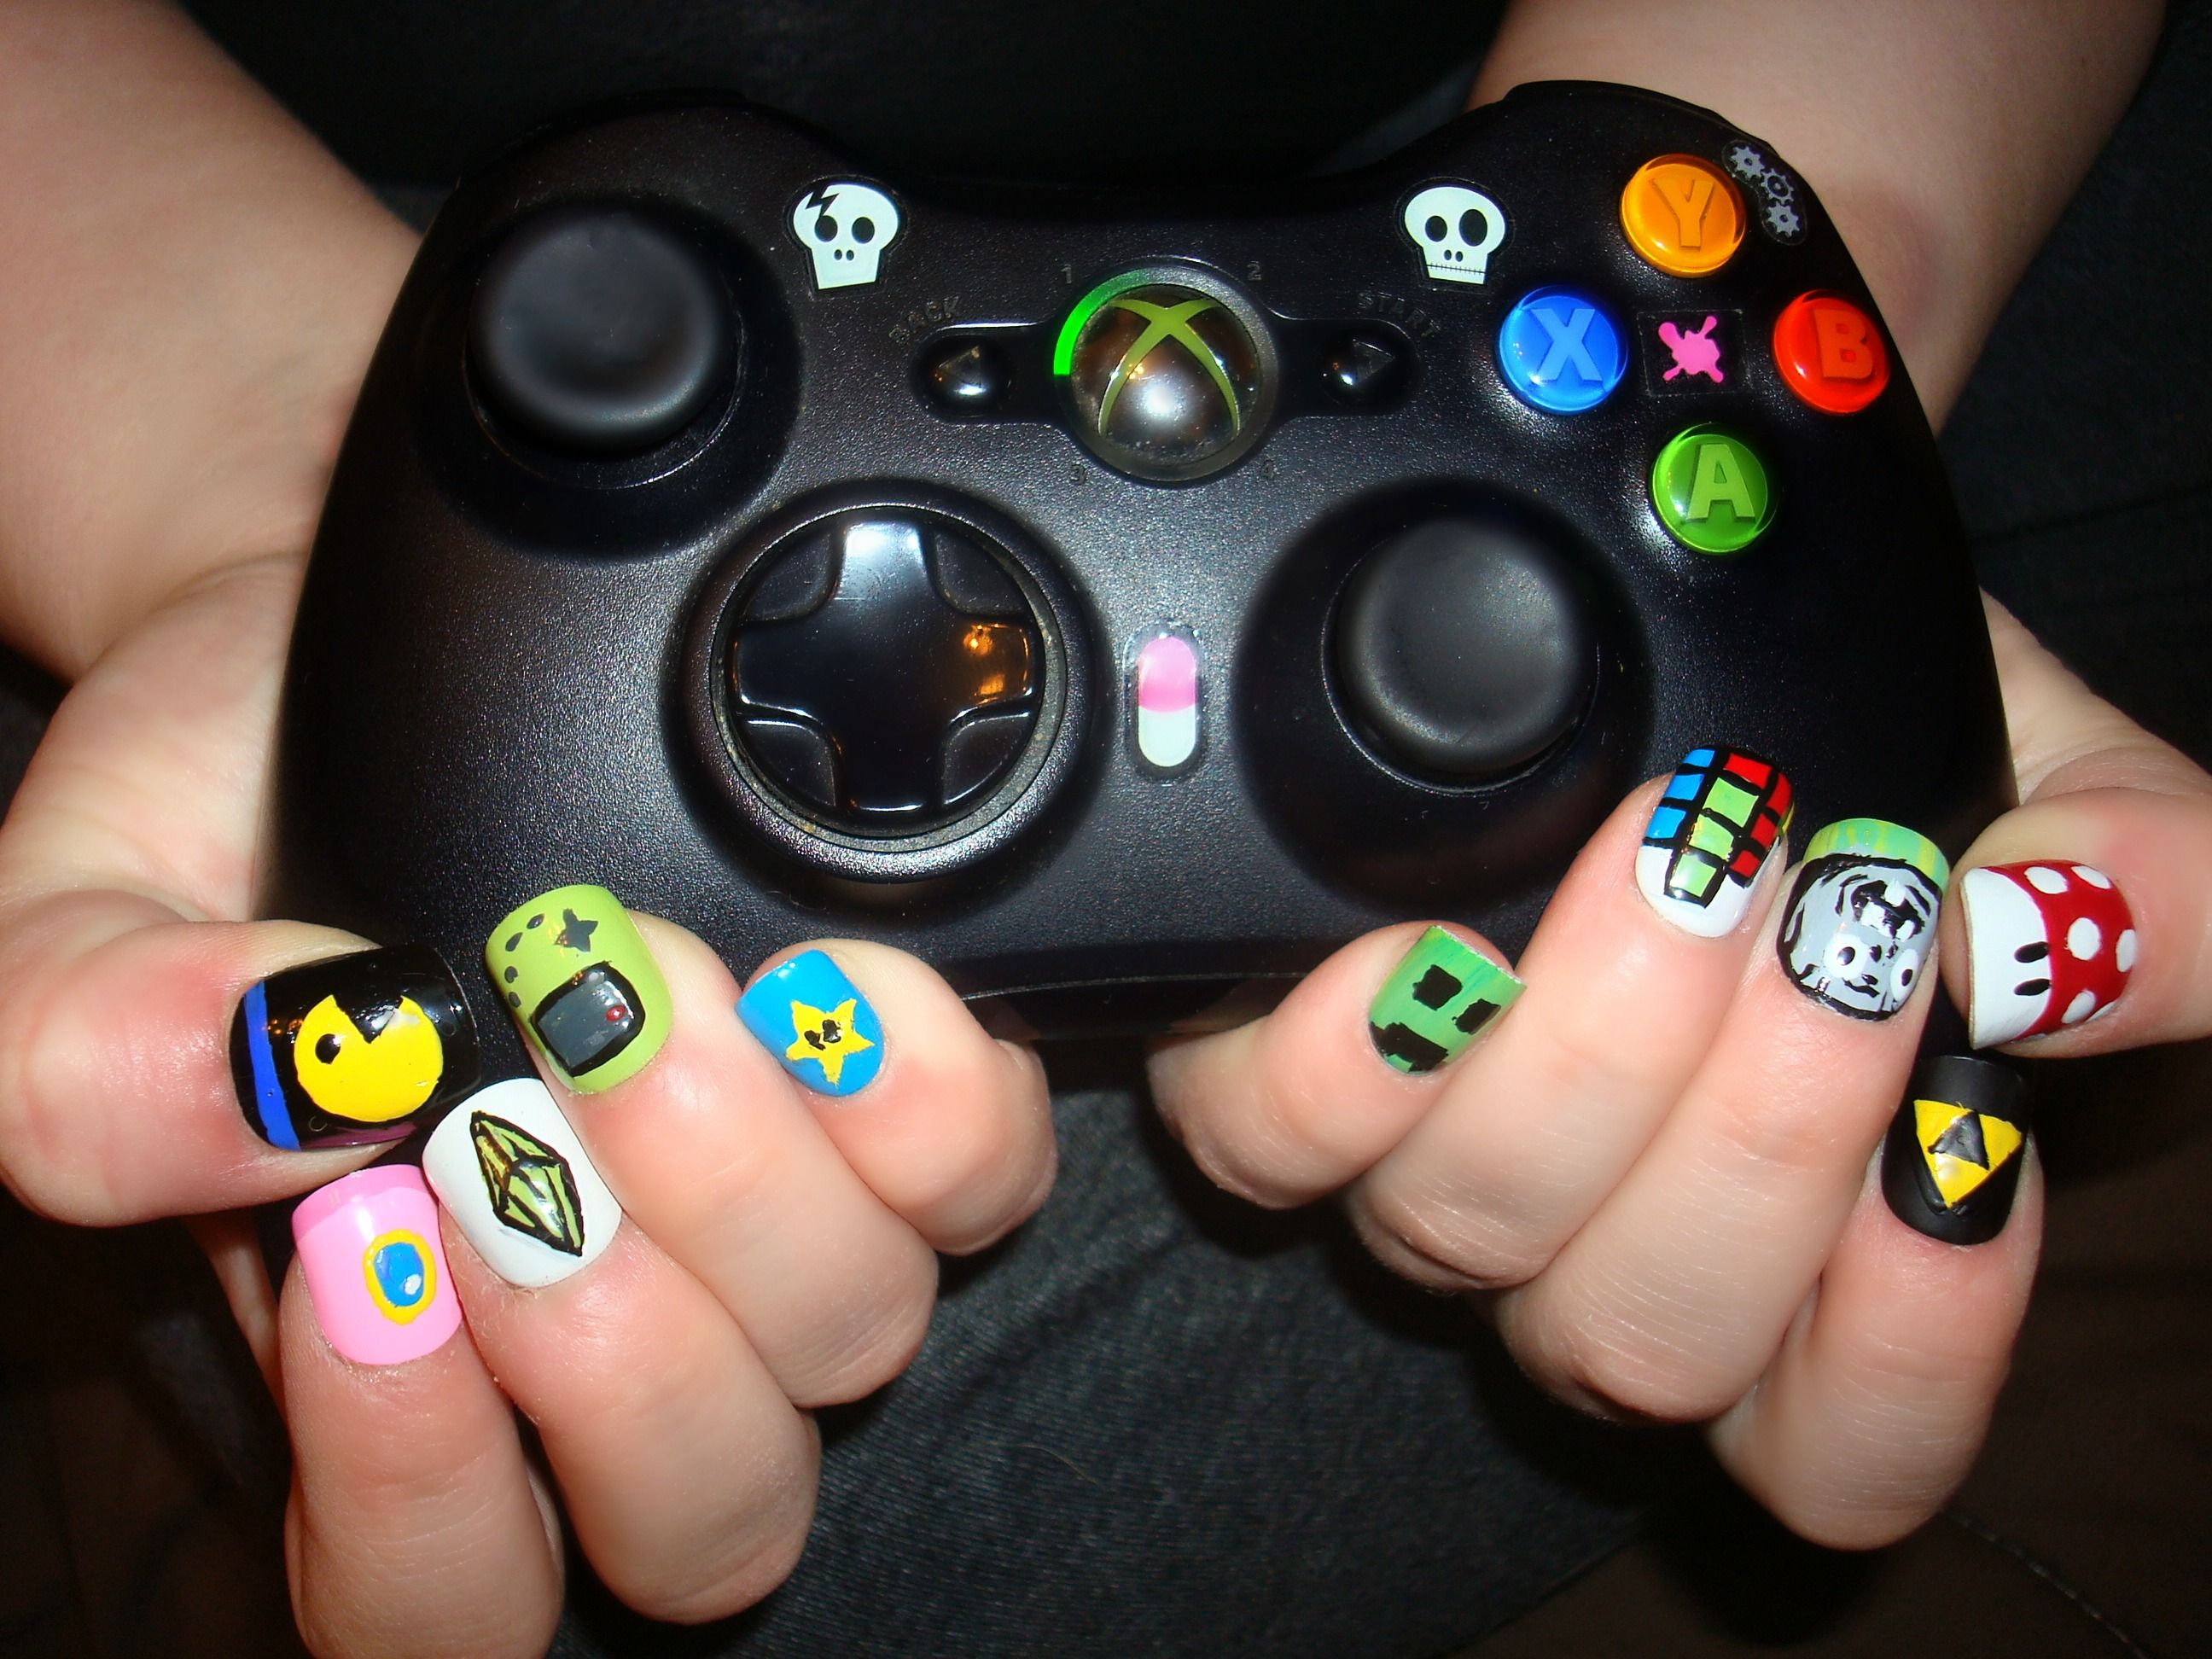 Xbox video game inspired nail art by tara cook nails xbox video game inspired nail art by tara cook prinsesfo Gallery